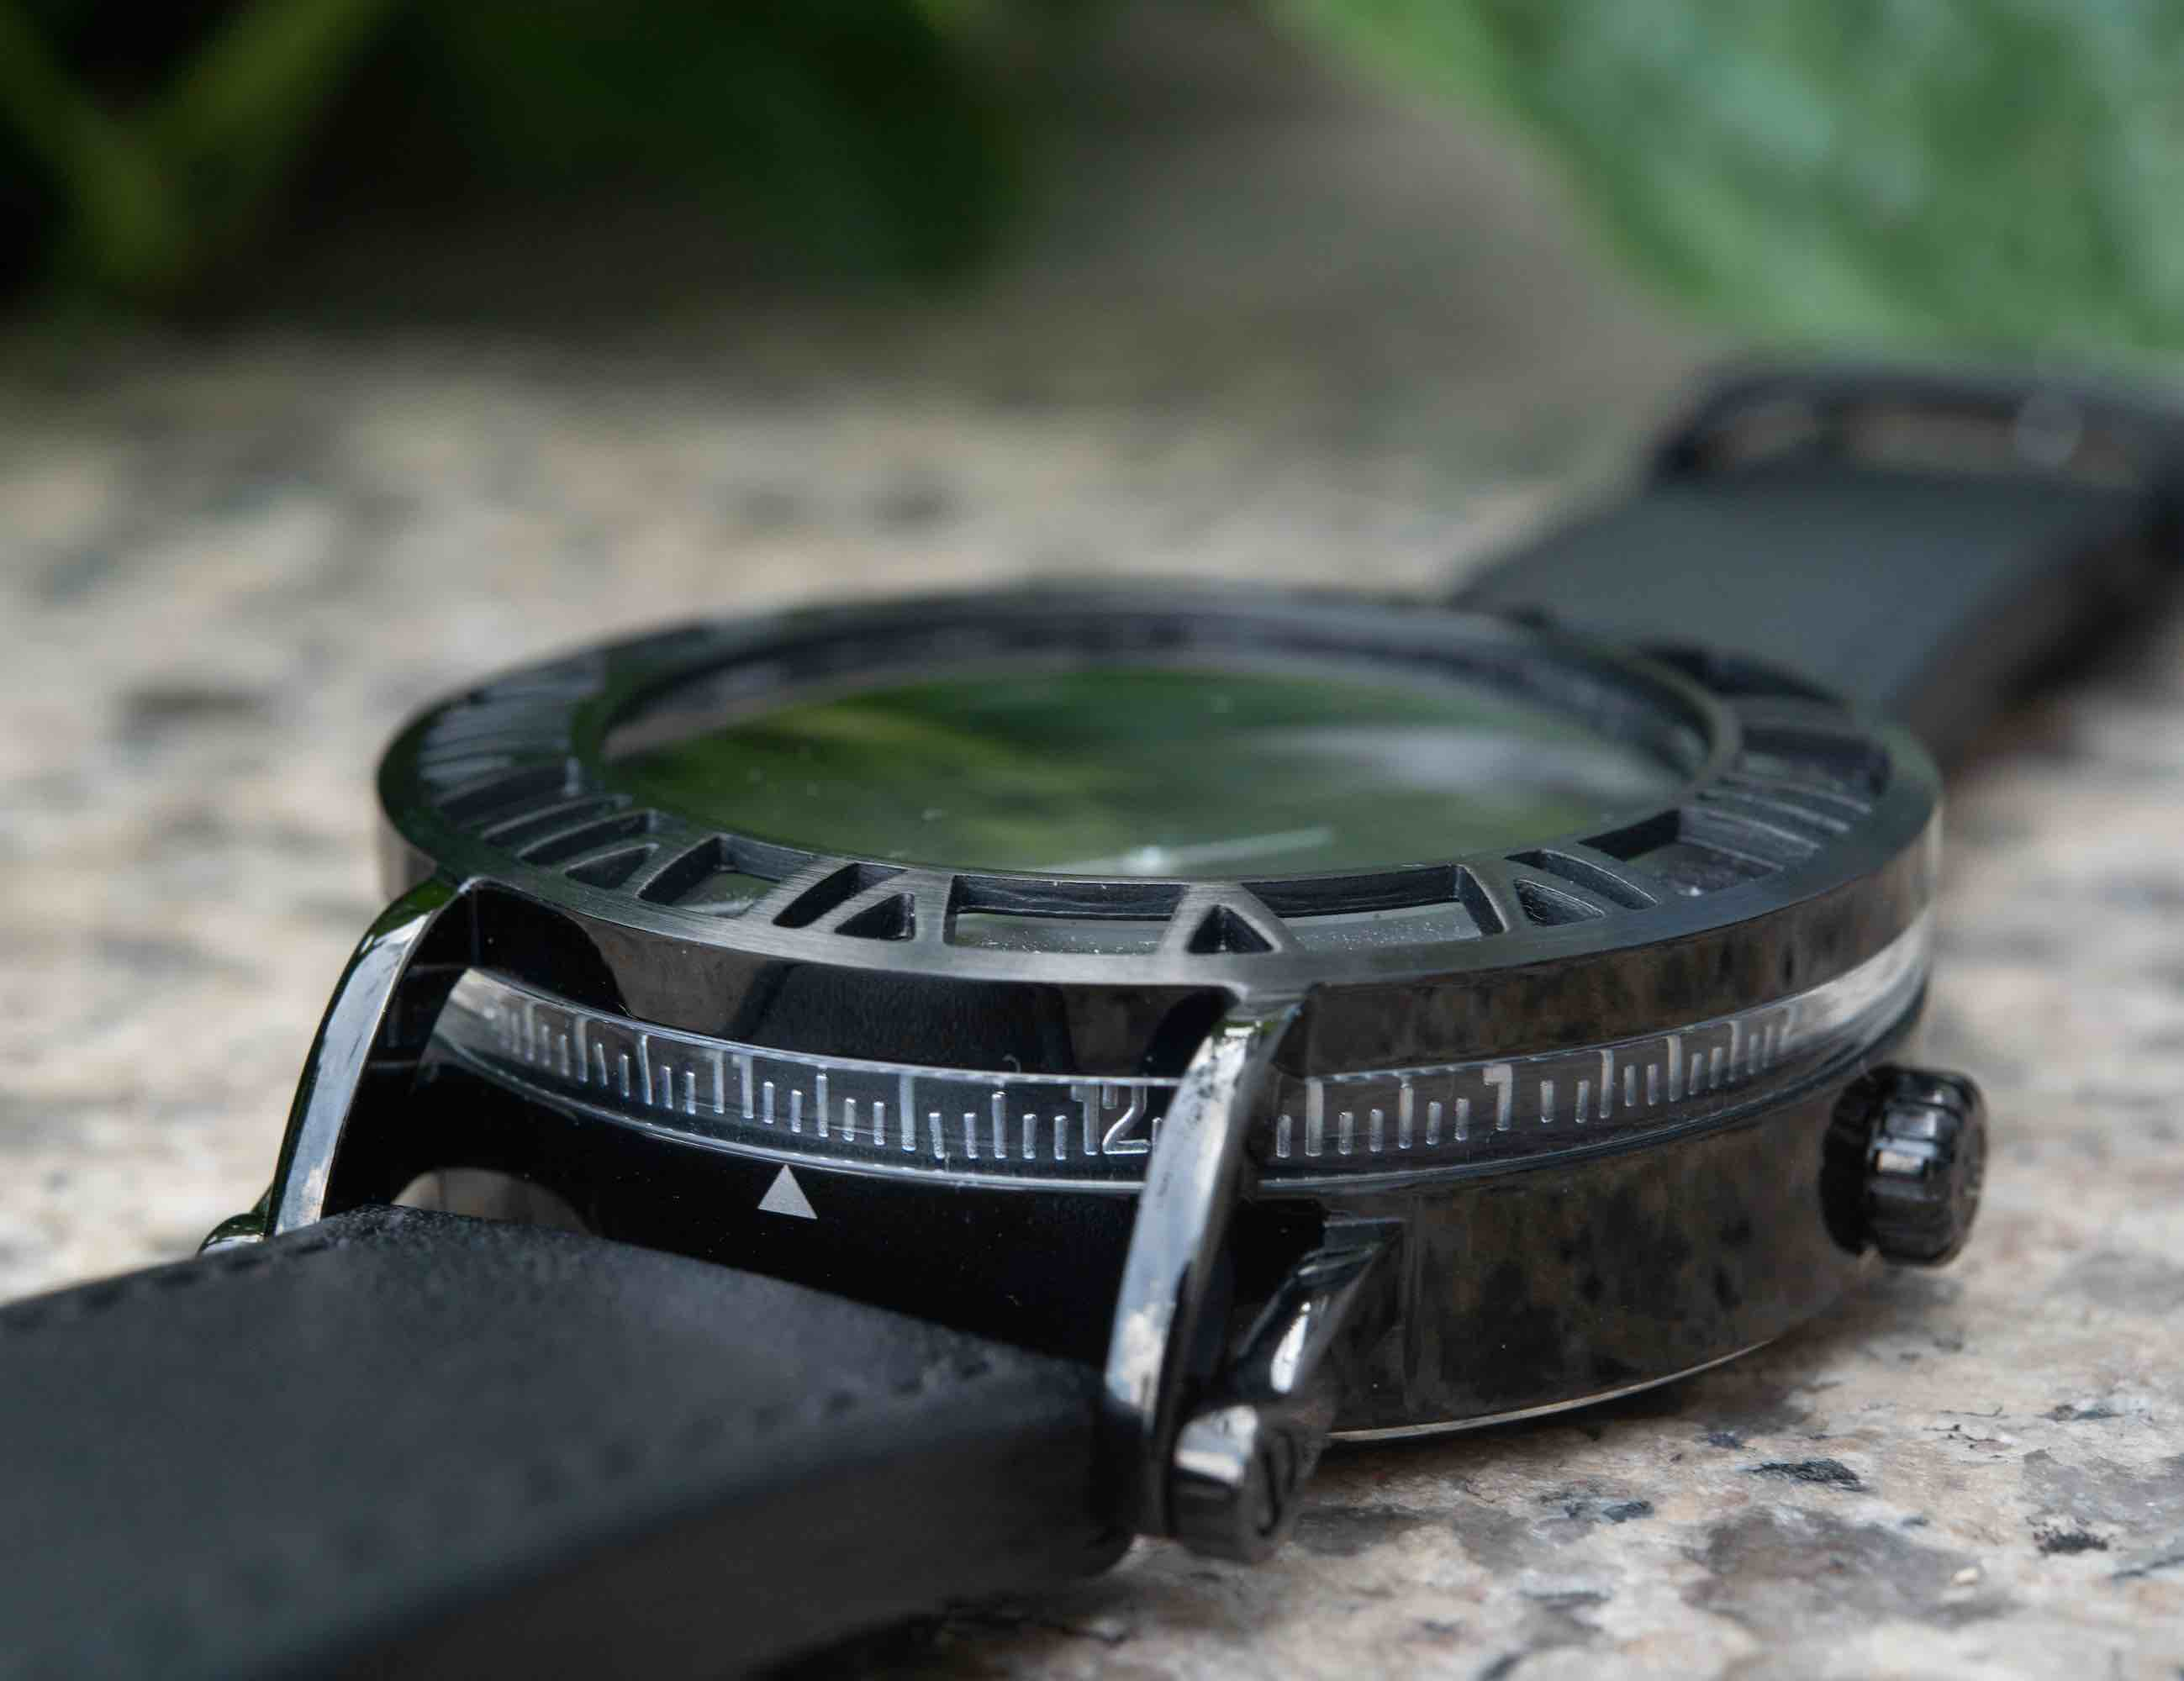 Horizon Timepiece Stealth Automatic Watch discreetly tells you the time